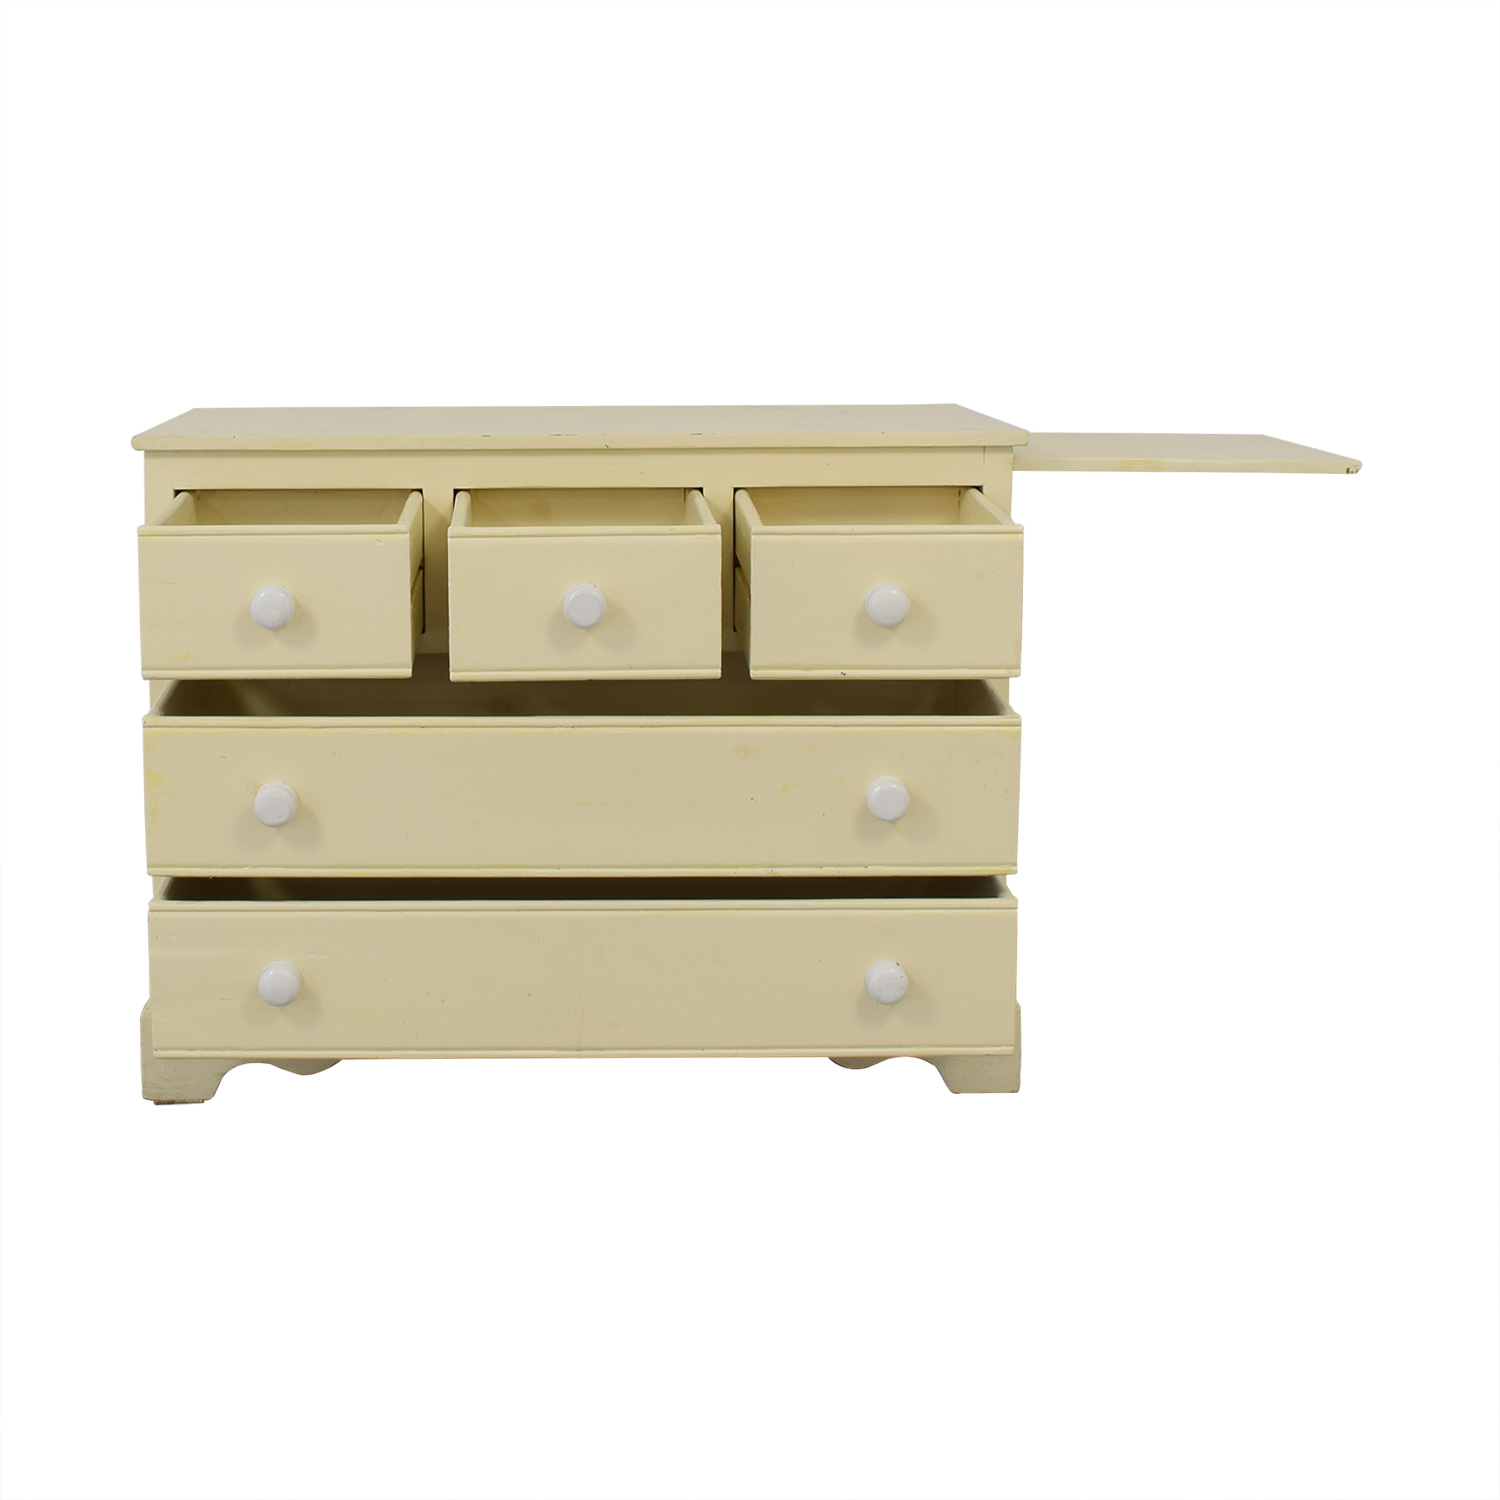 Pottery Barn Pottery Barn Five Drawer Dresser with Extendable Table nj